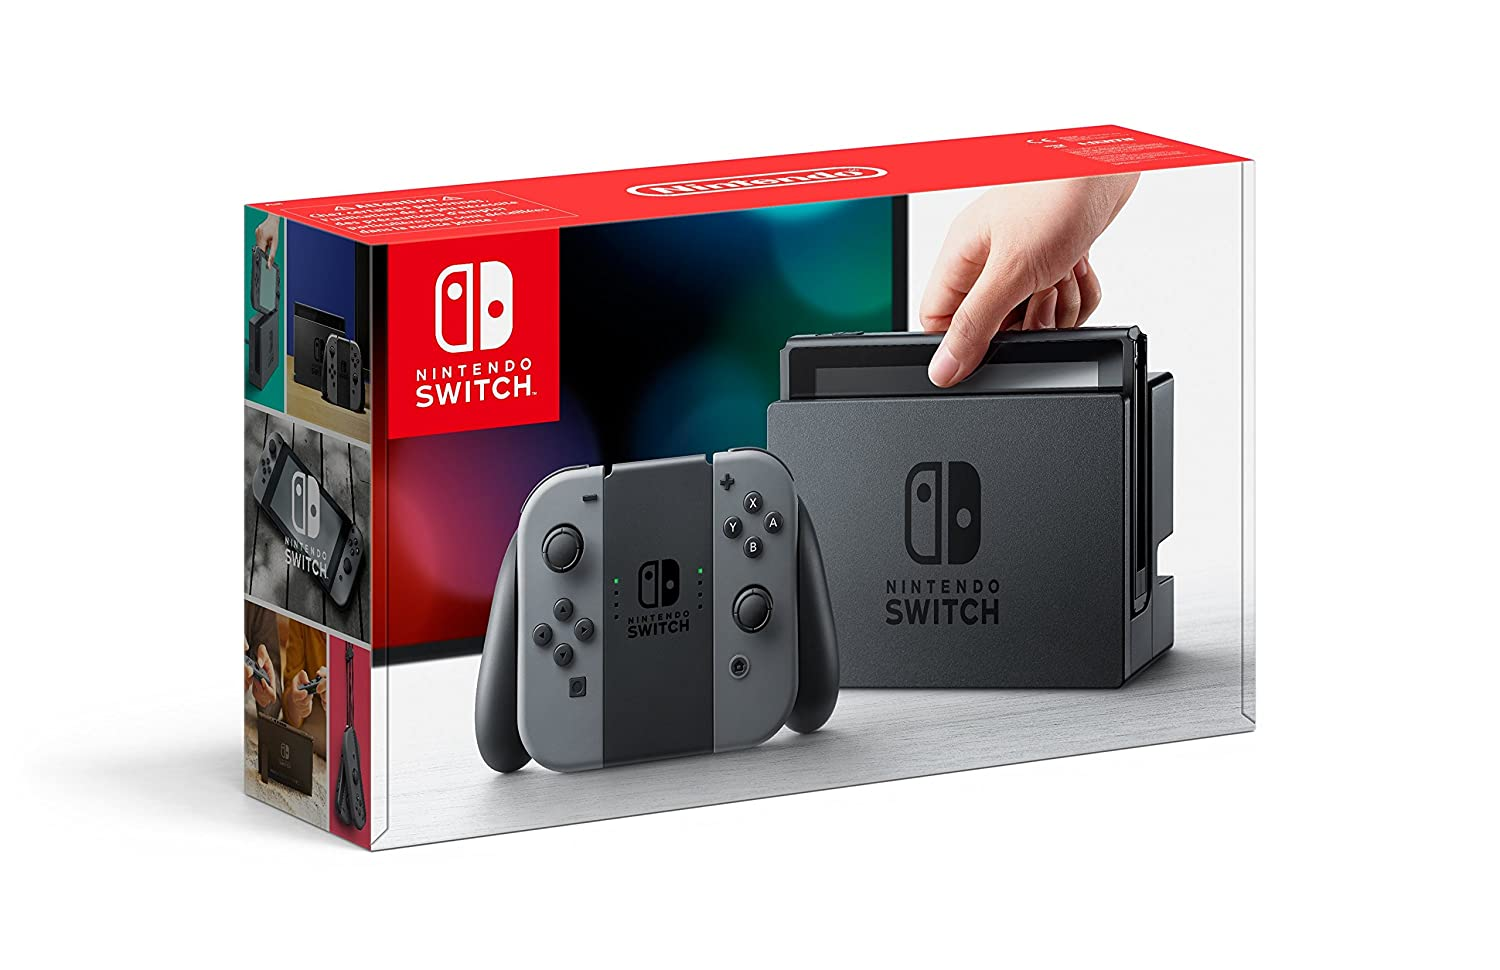 Image result for Nintendo Switch box